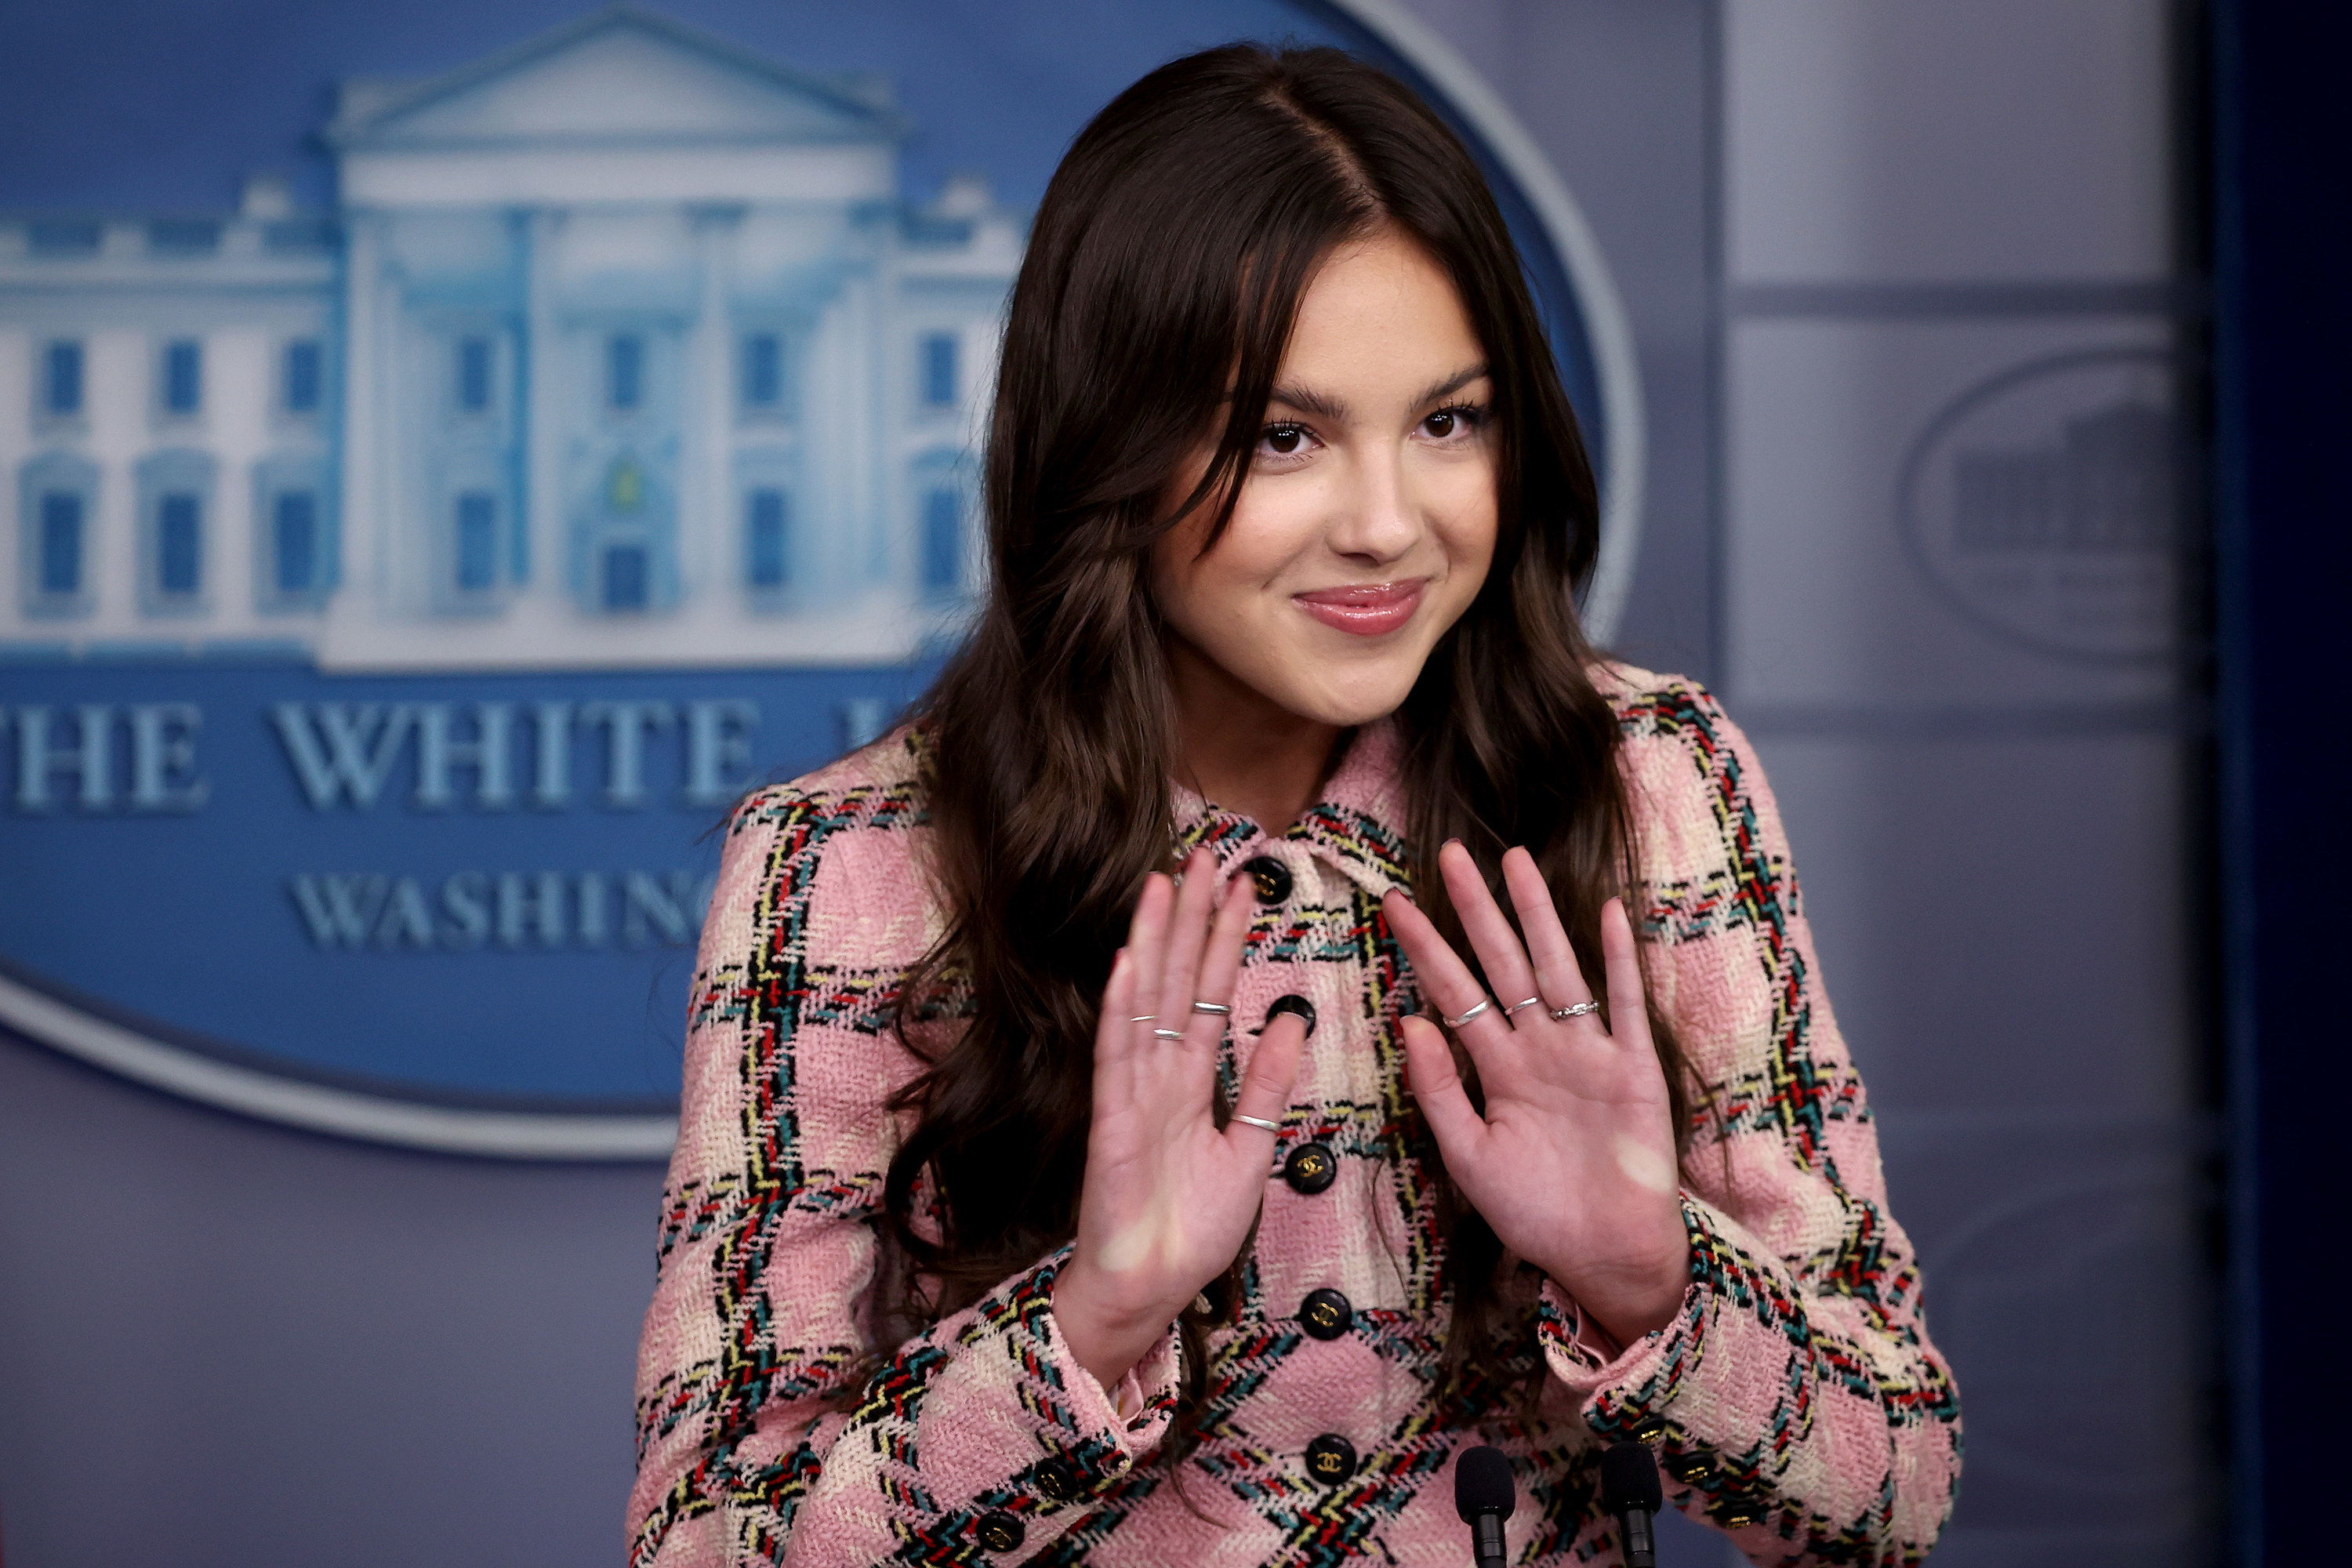 Olivia speaking in the White House press room in a plaid outfit